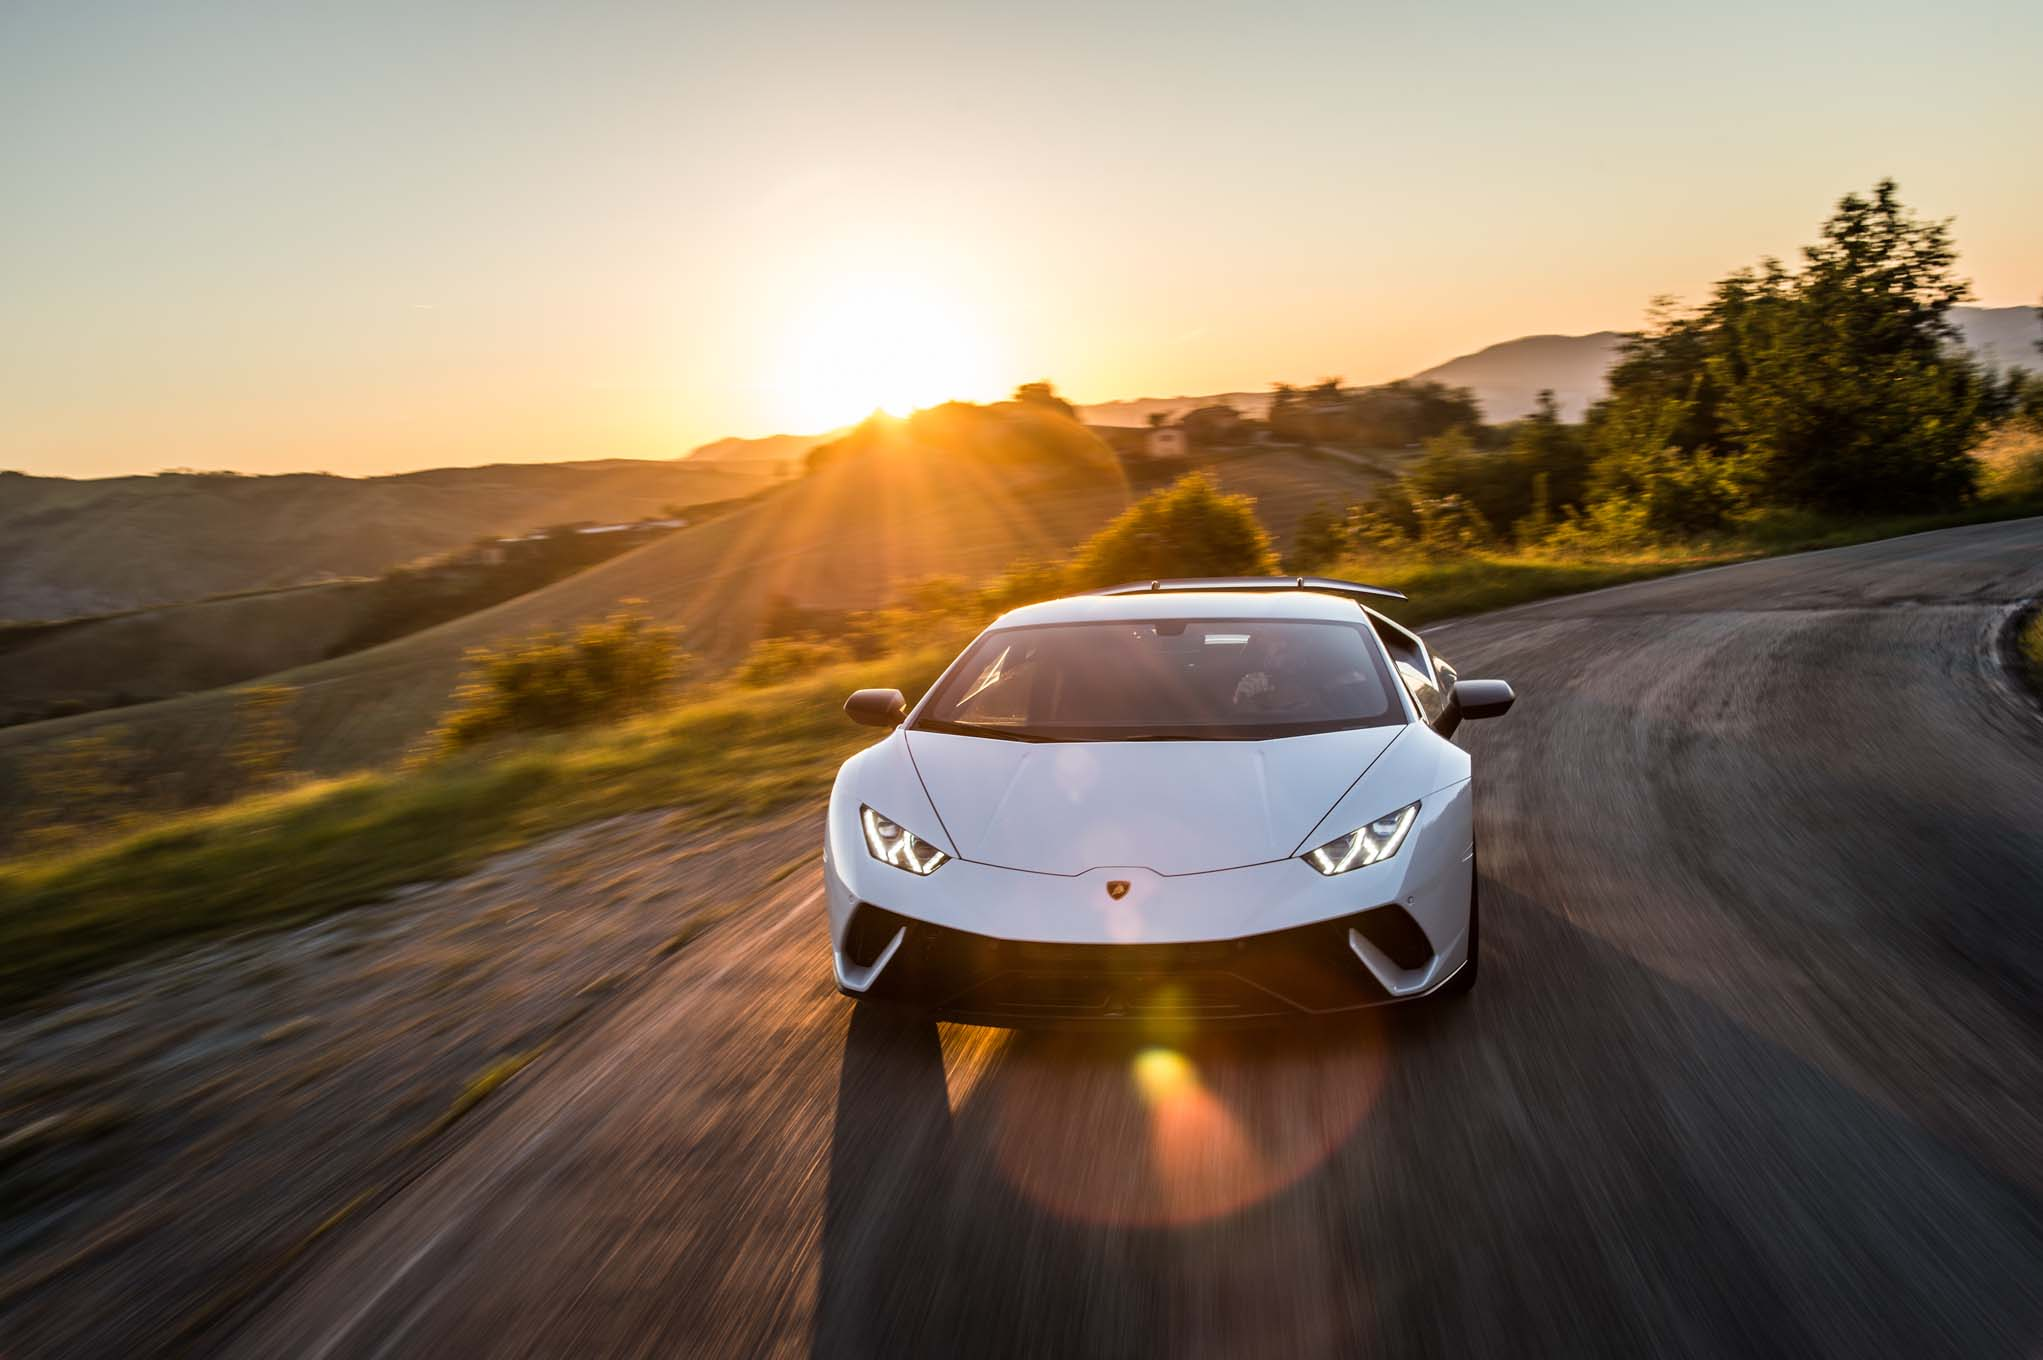 2018 lamborghini huracan performante top speed. wonderful huracan lamborghini considering fourseat sports car report with 2018 lamborghini huracan performante top speed